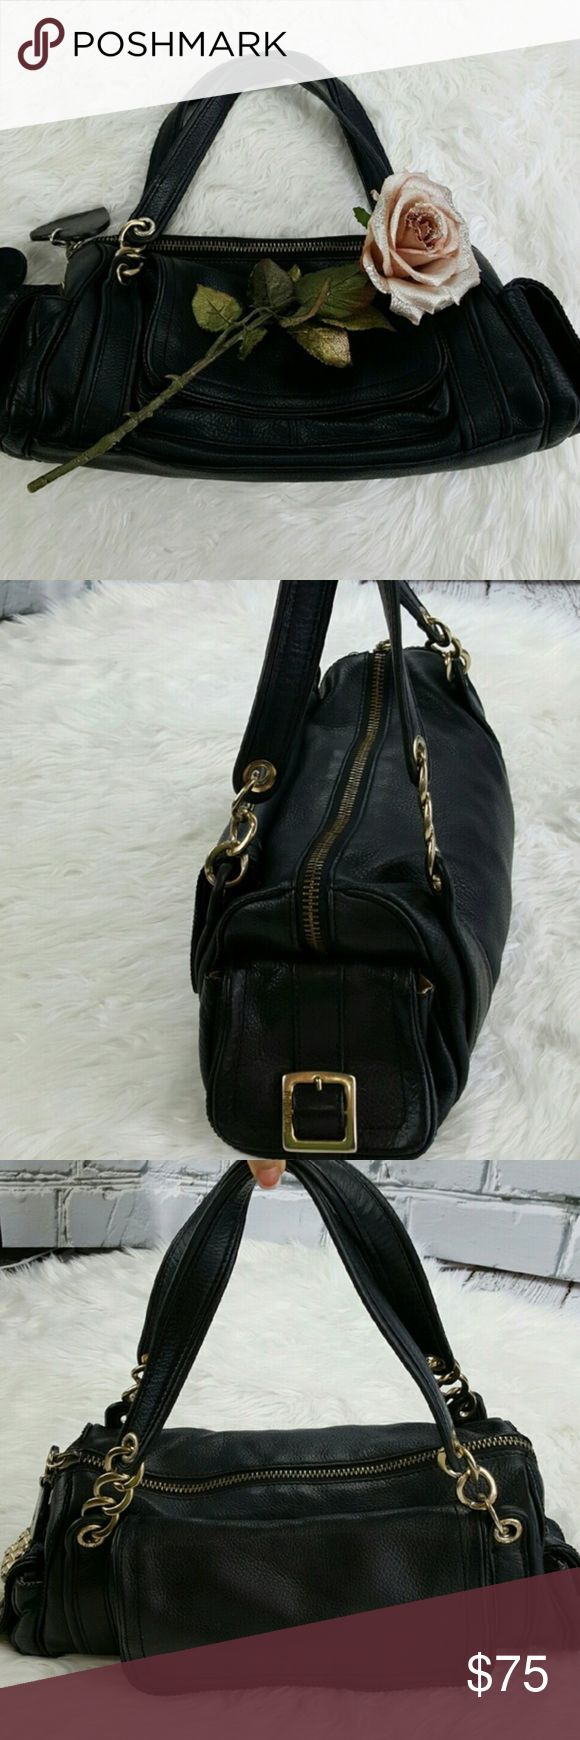 "💕SALE💕Juicy Couture Black Leather Satchel Bagv Fabulous 💕Juicy Couture Black 100% Leather Satchel Bag with 3 outside pockets one large in front and 2 on sides. Inside Zippered Compartment and multi purpose pockets rabbits foot and embellished Juicy Tag 17"" W x 8"" H Great Condition plenty of room for all your goodies High Quality Bag Juicy Couture Bags Satchels"